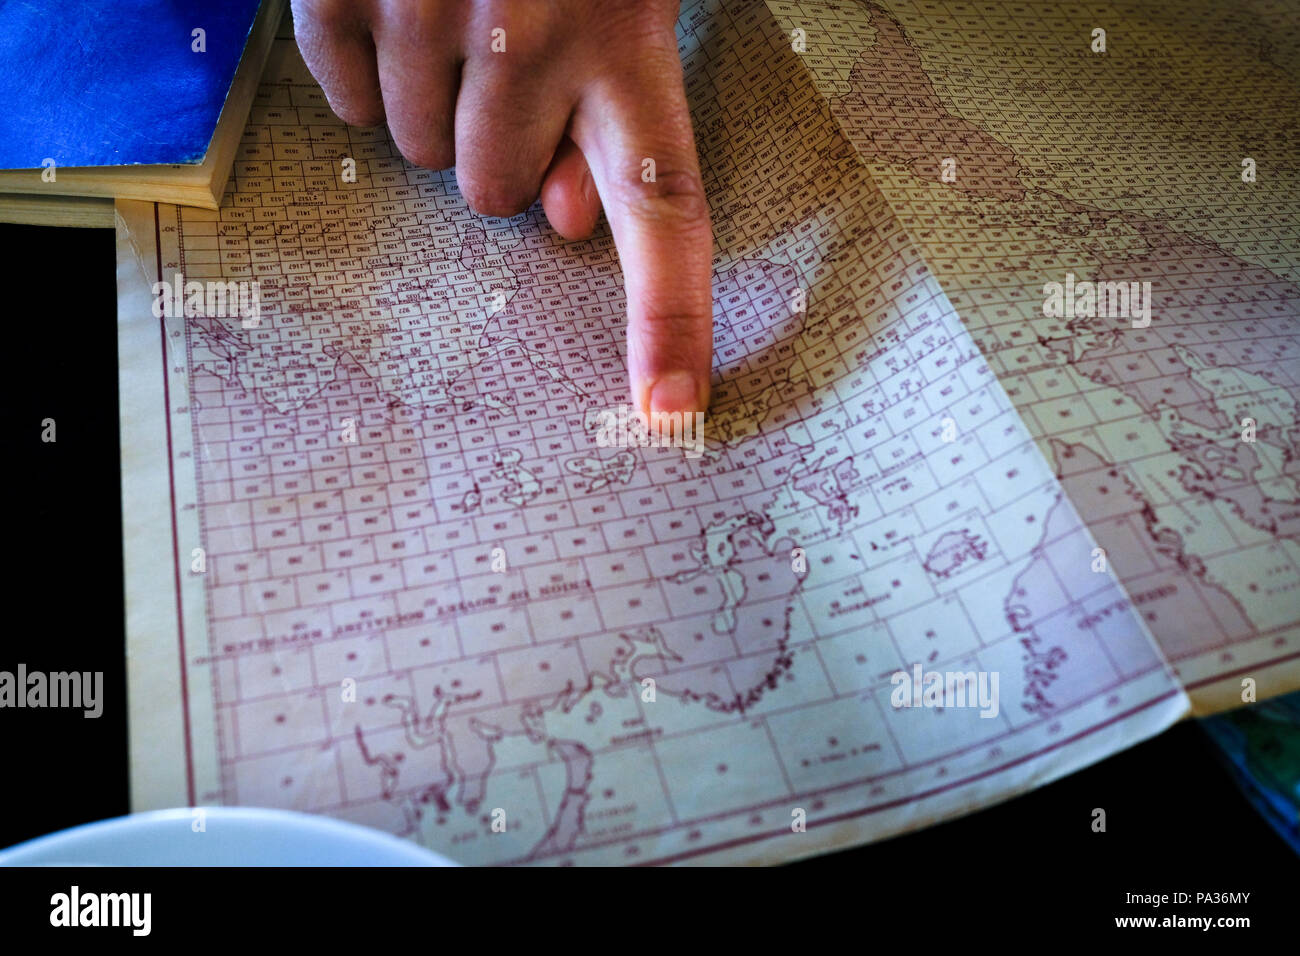 cropped view of adult man's finger pointing to a location on an old printed map of world on kitchen table - Stock Image